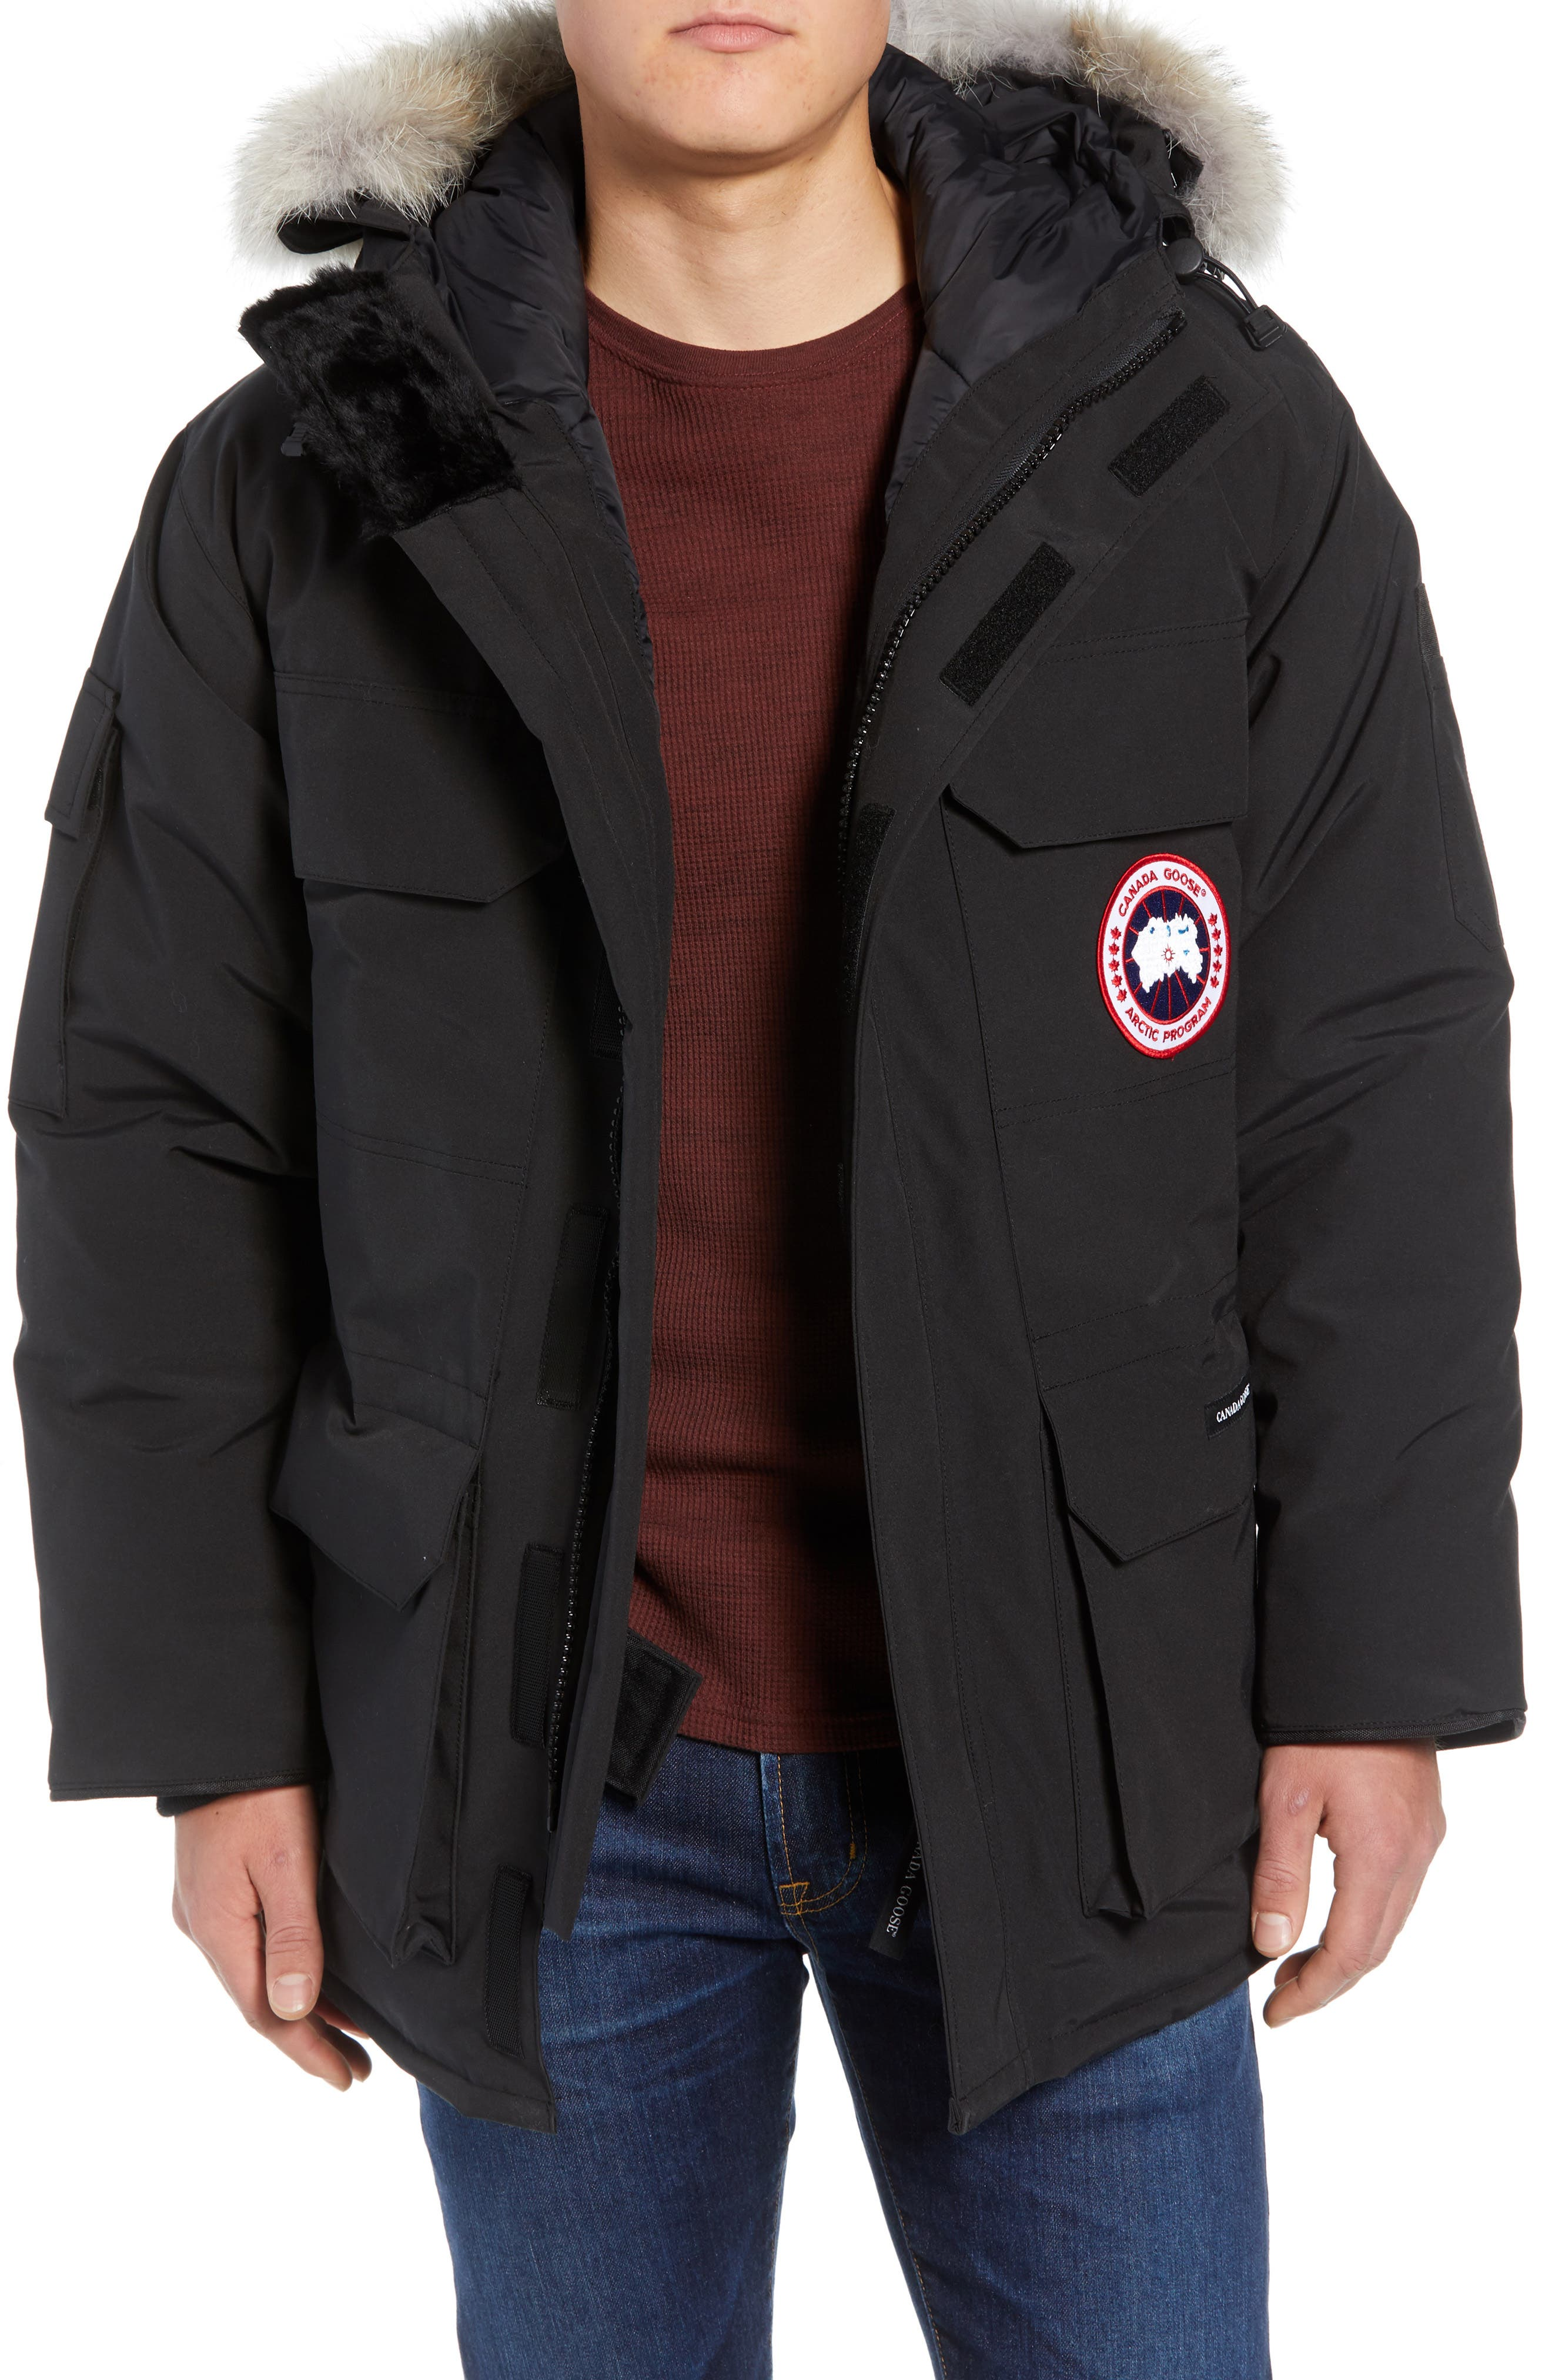 PBI Expedition Regular Fit Down Parka with Genuine Coyote Fur Trim,                             Main thumbnail 1, color,                             001